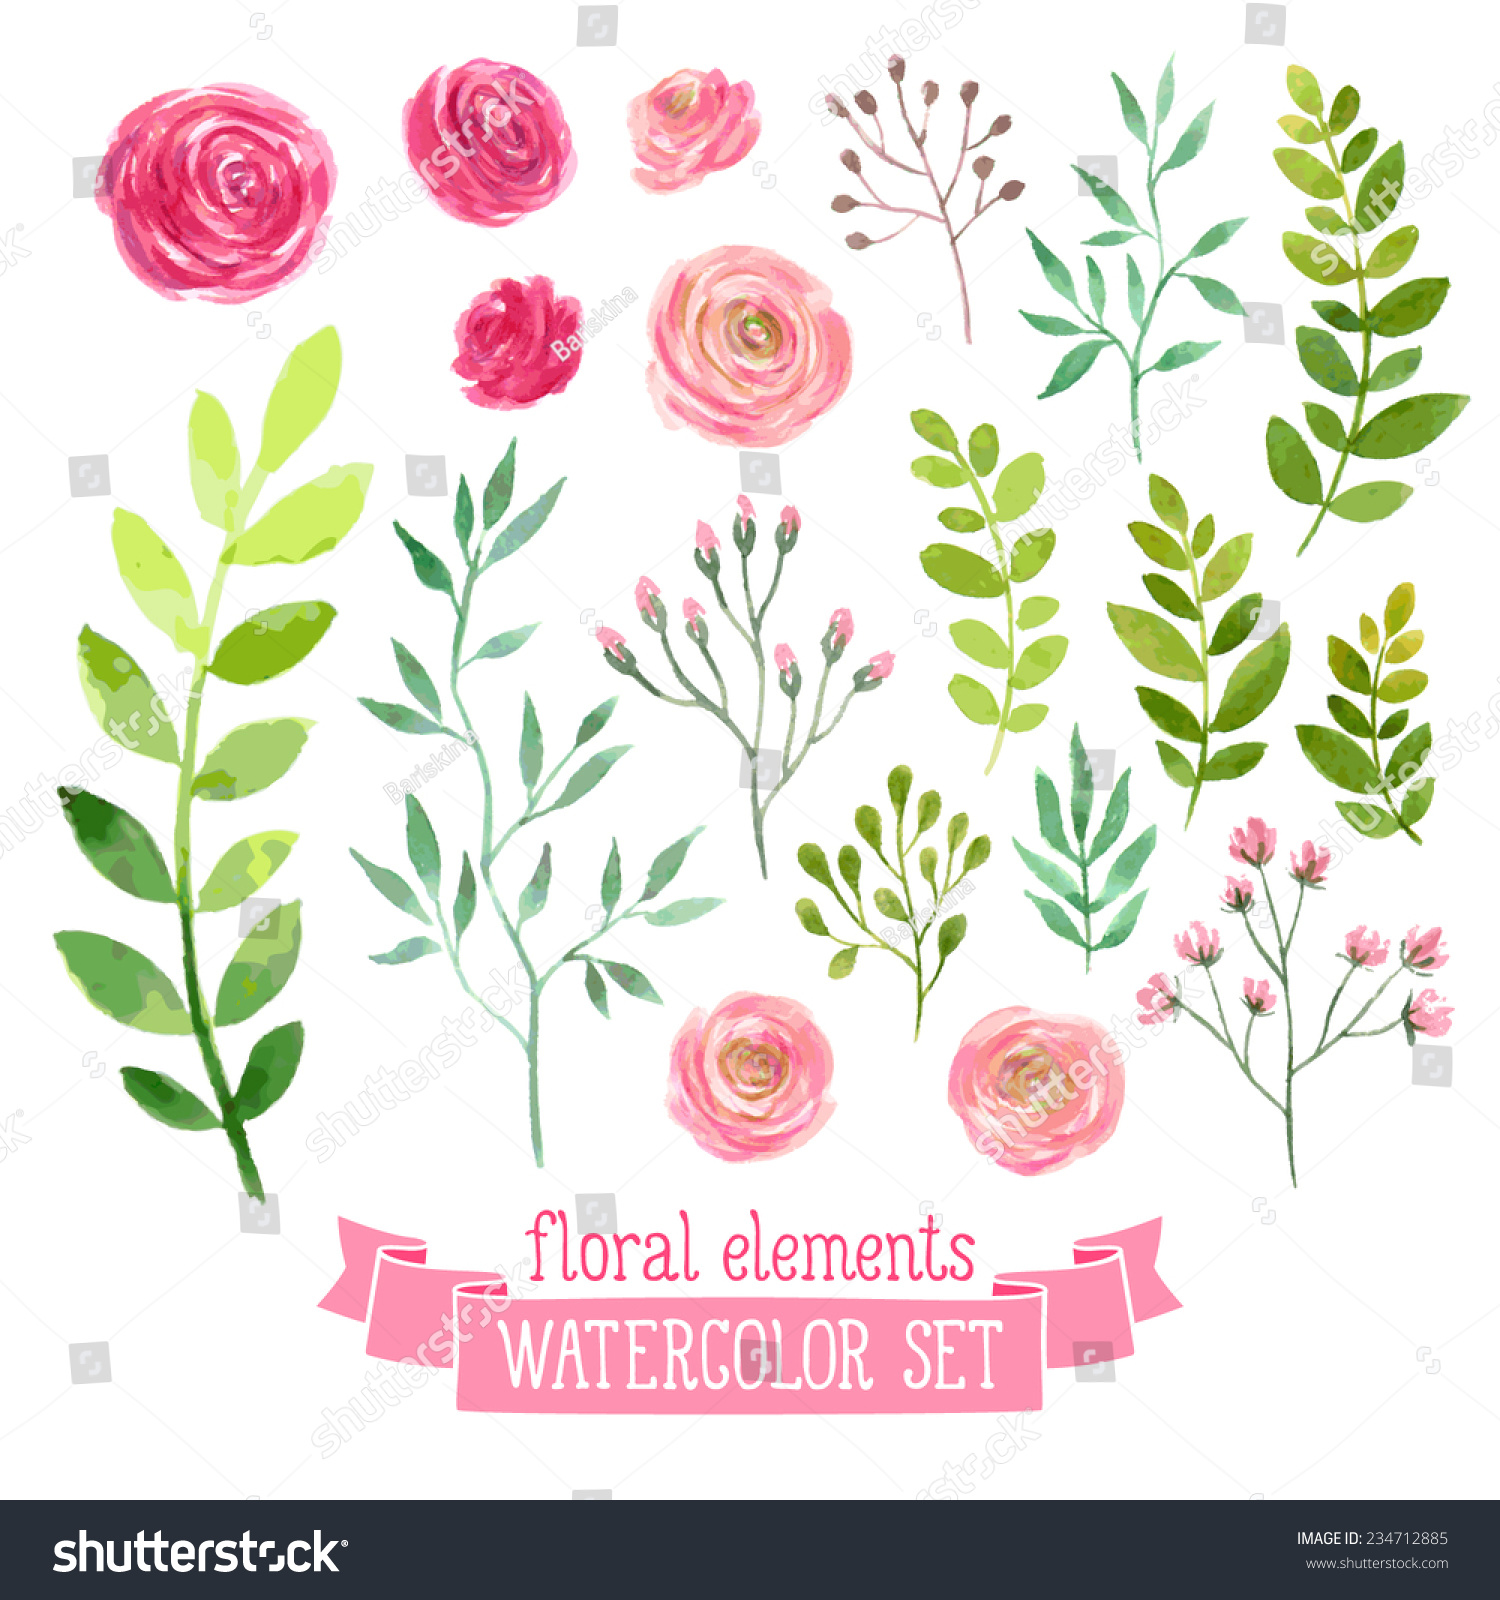 Royalty Free Vector Floral Set Colorful Floral 234712885 Stock